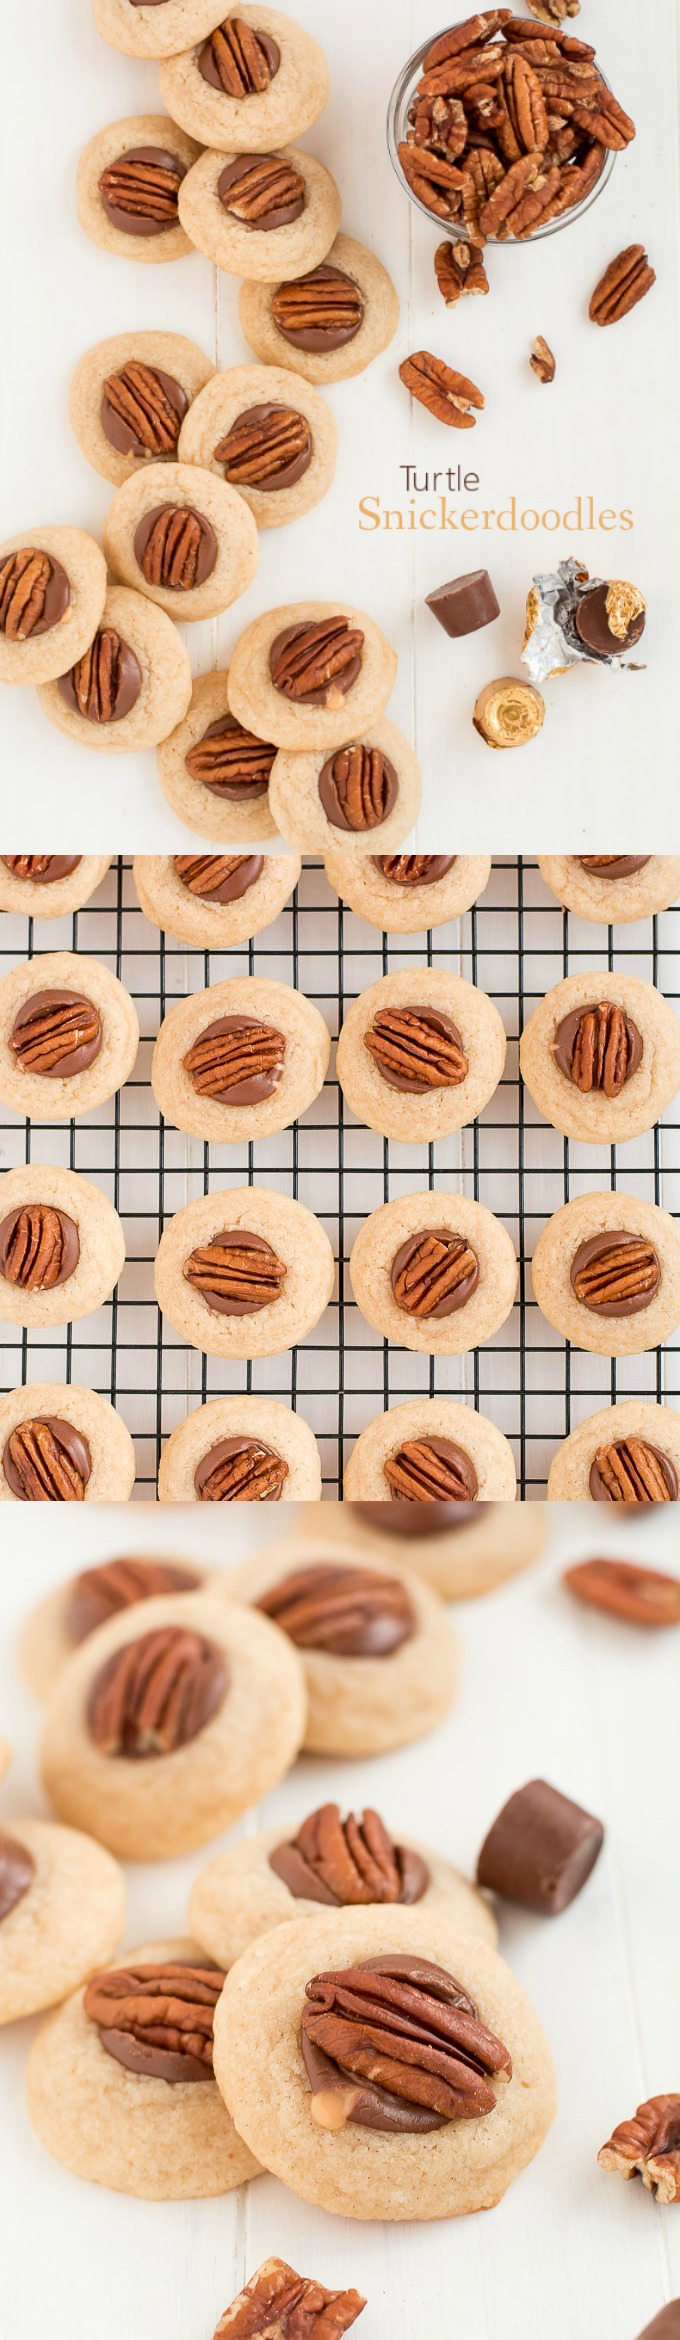 Turtle Snickerdoodles are soft cinnamon cookies topped with chocolate caramel Rolos and a pecan. Perfect for your Christmas cookie plate!